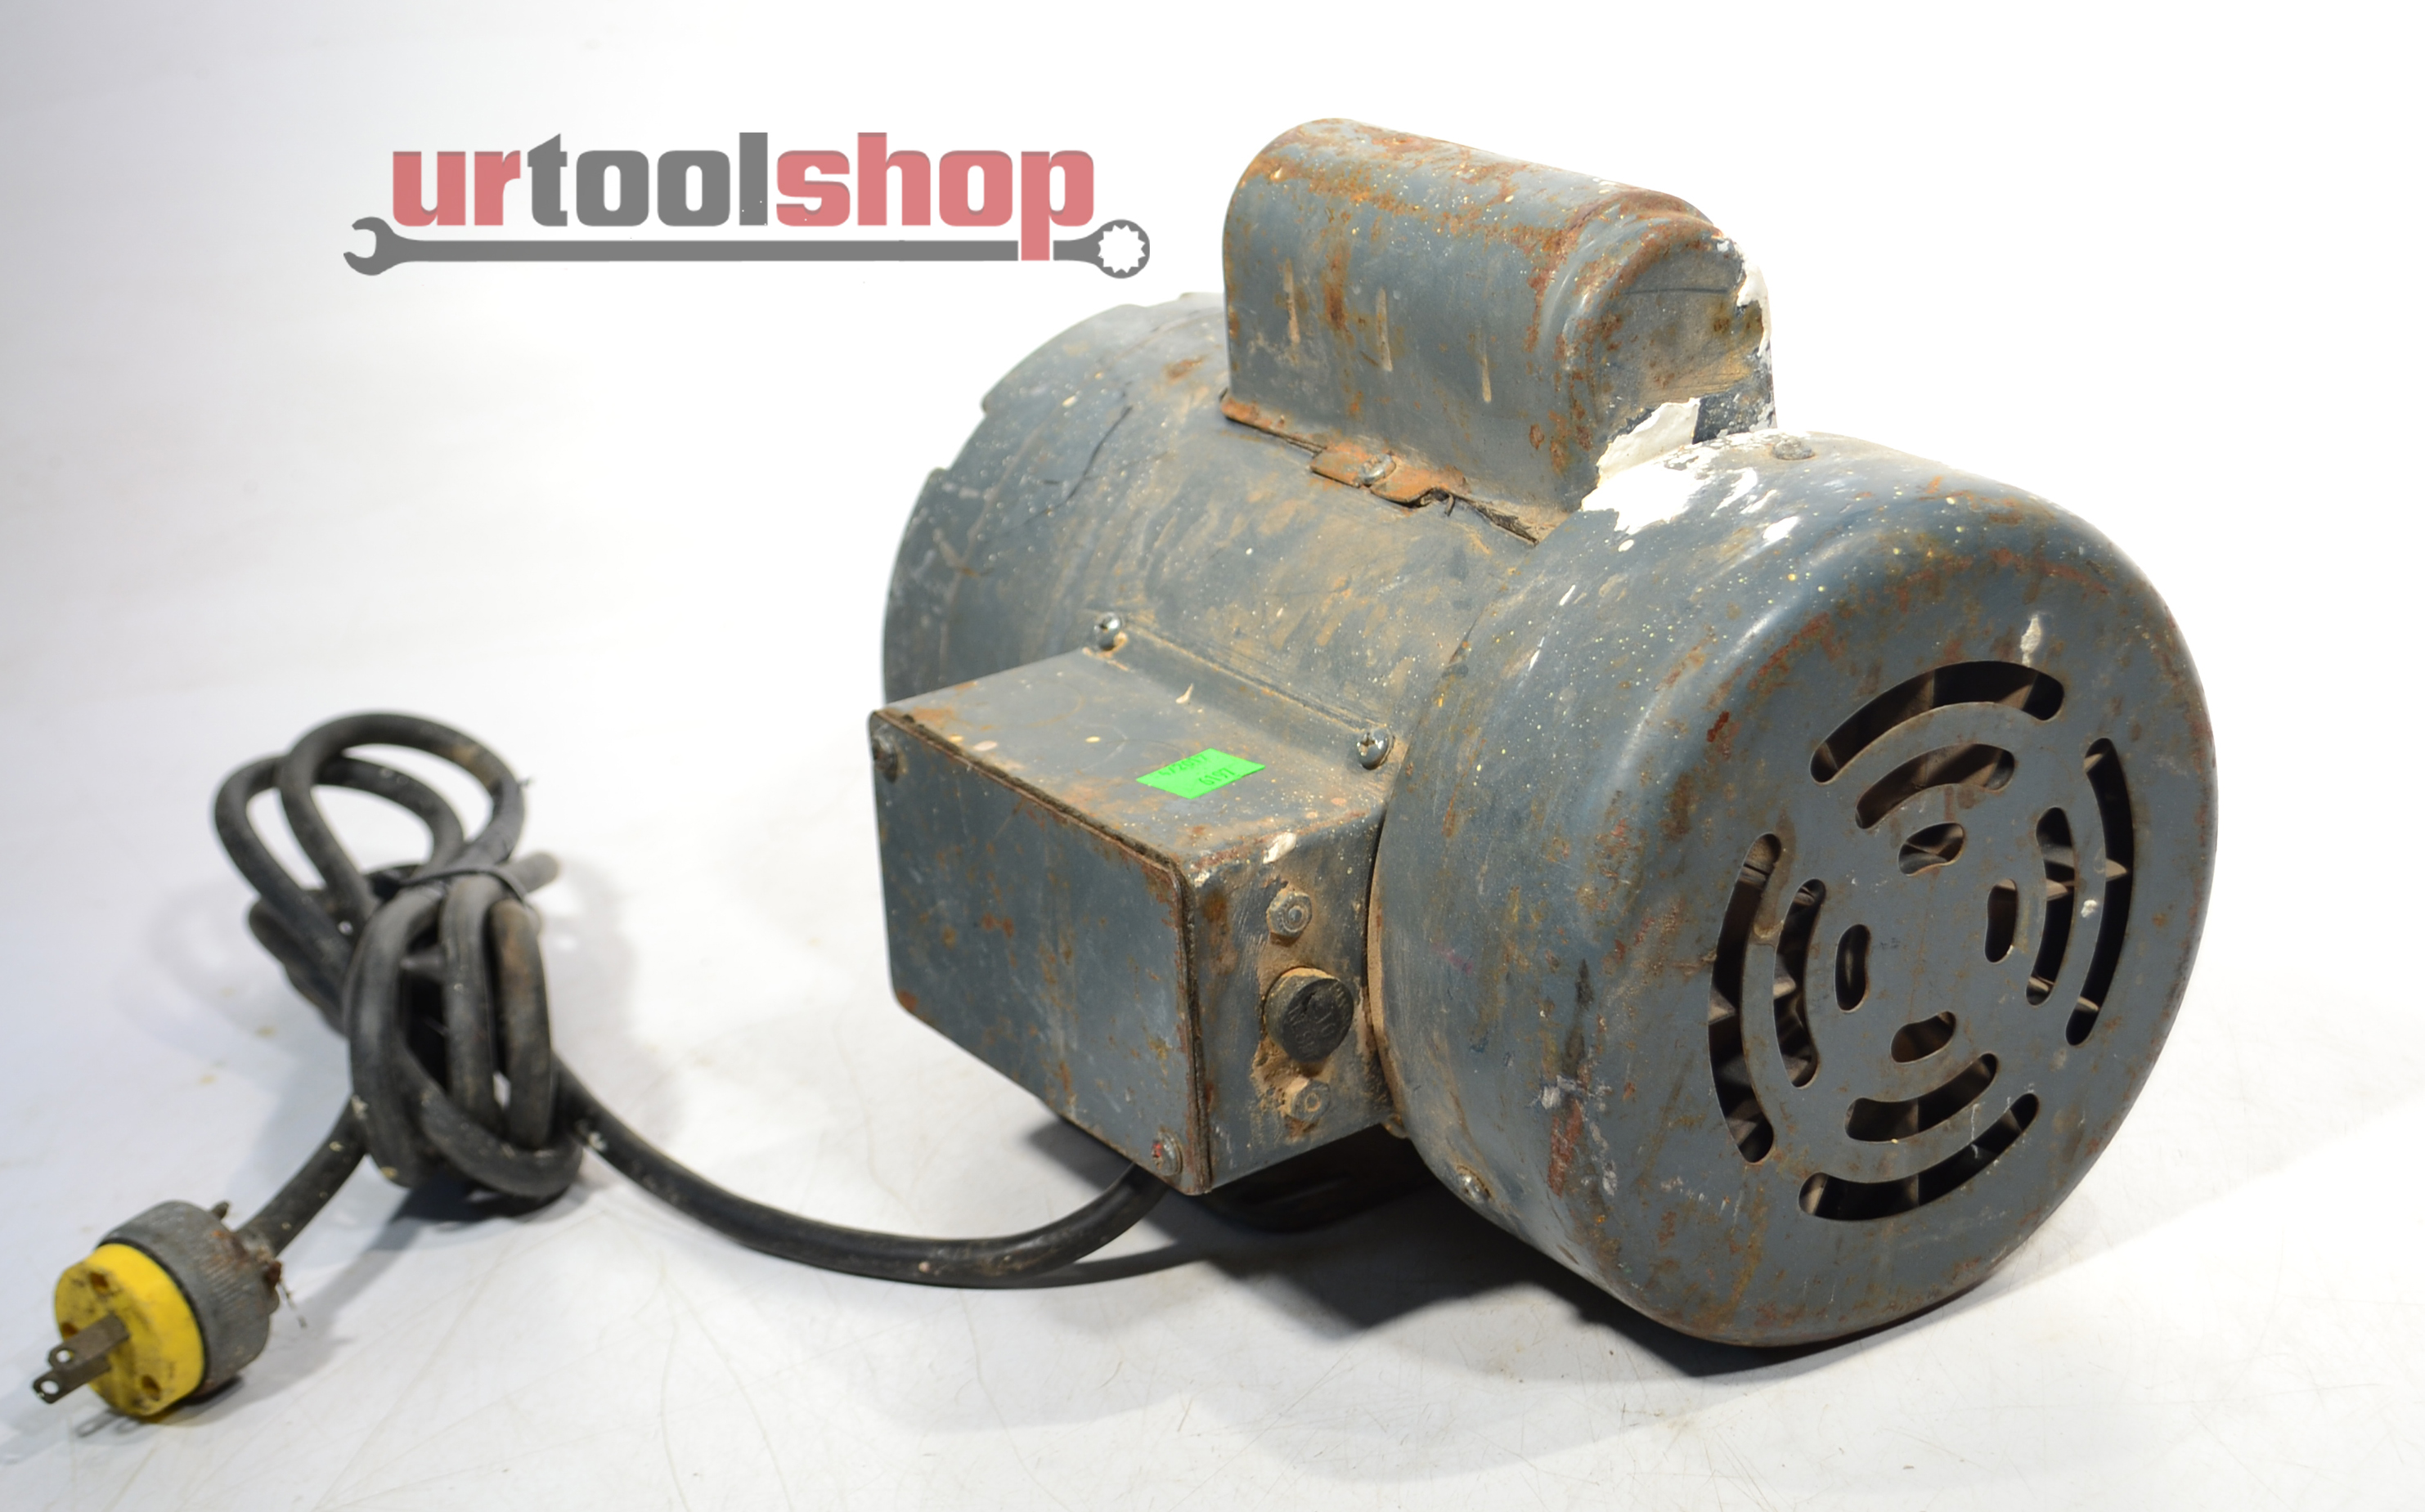 Rockwell 62 042 10 Contractor Table Saw Motor 1 1 2 Hp 3460rpm 115 230v 6197 57 Ebay